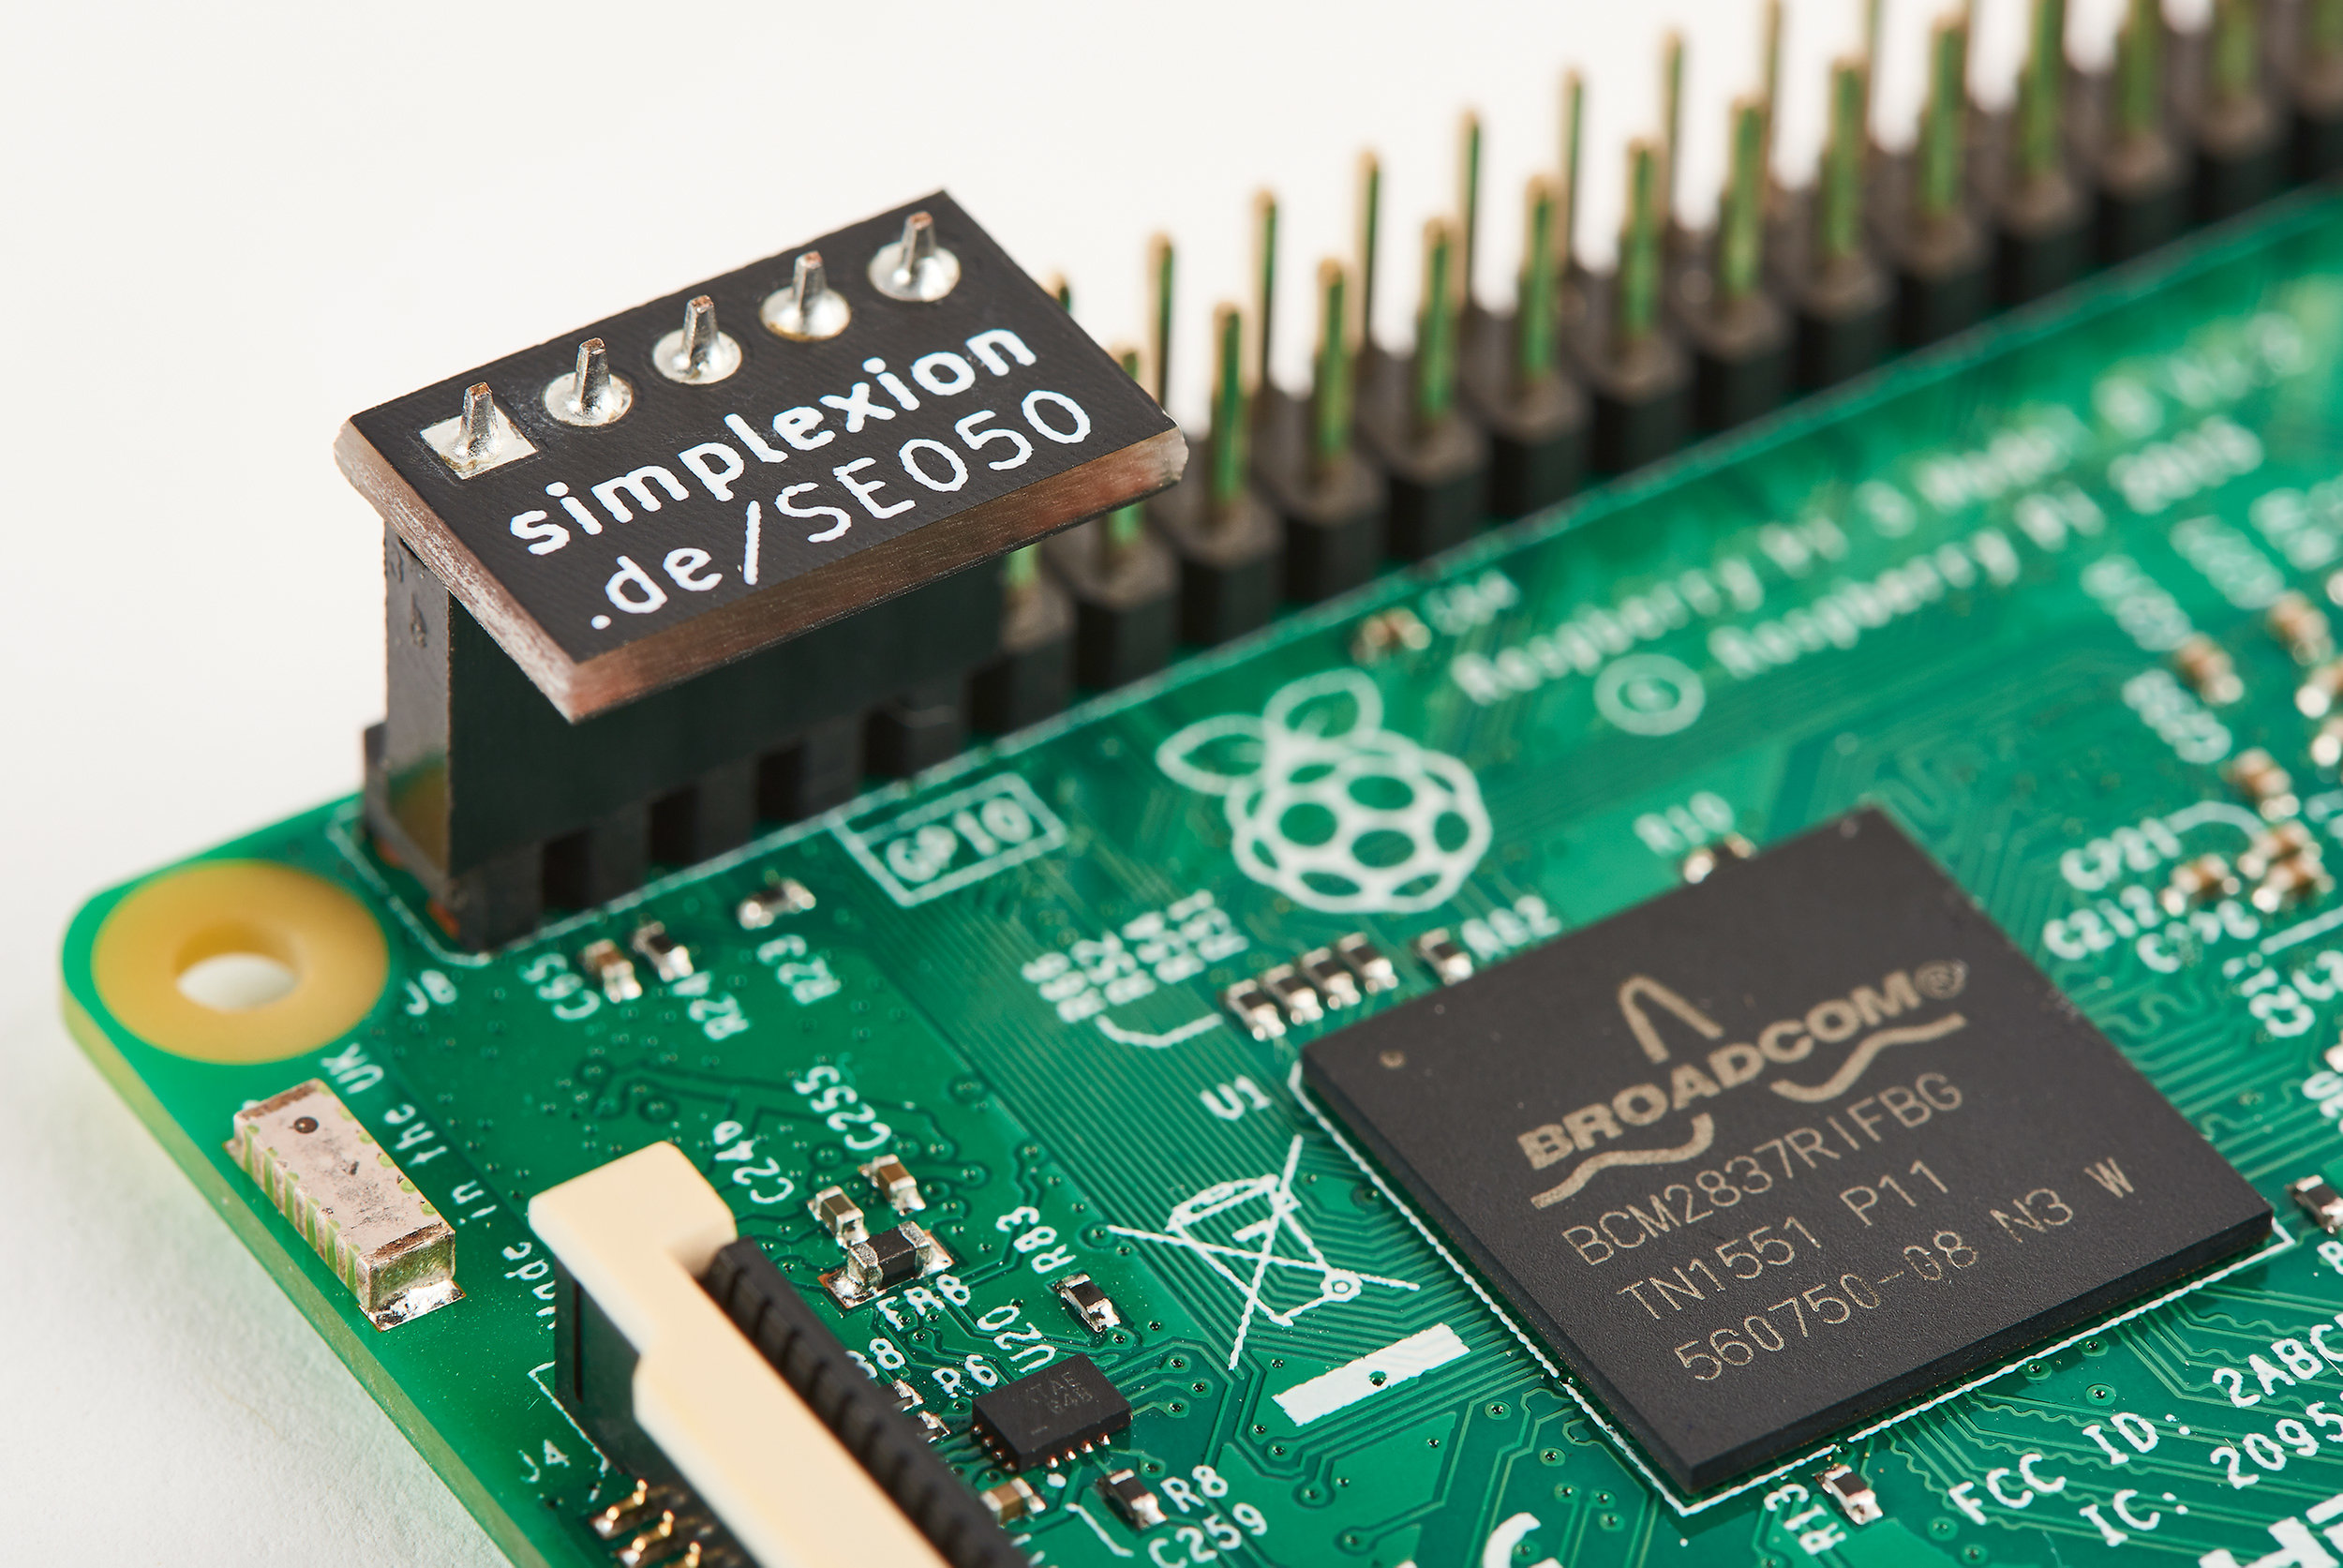 NXP SE050Breakout Board - Get your free breakout board now and start developing! Drop us a mail at: se050@simplexion.de and tell us what you'd like to hack!